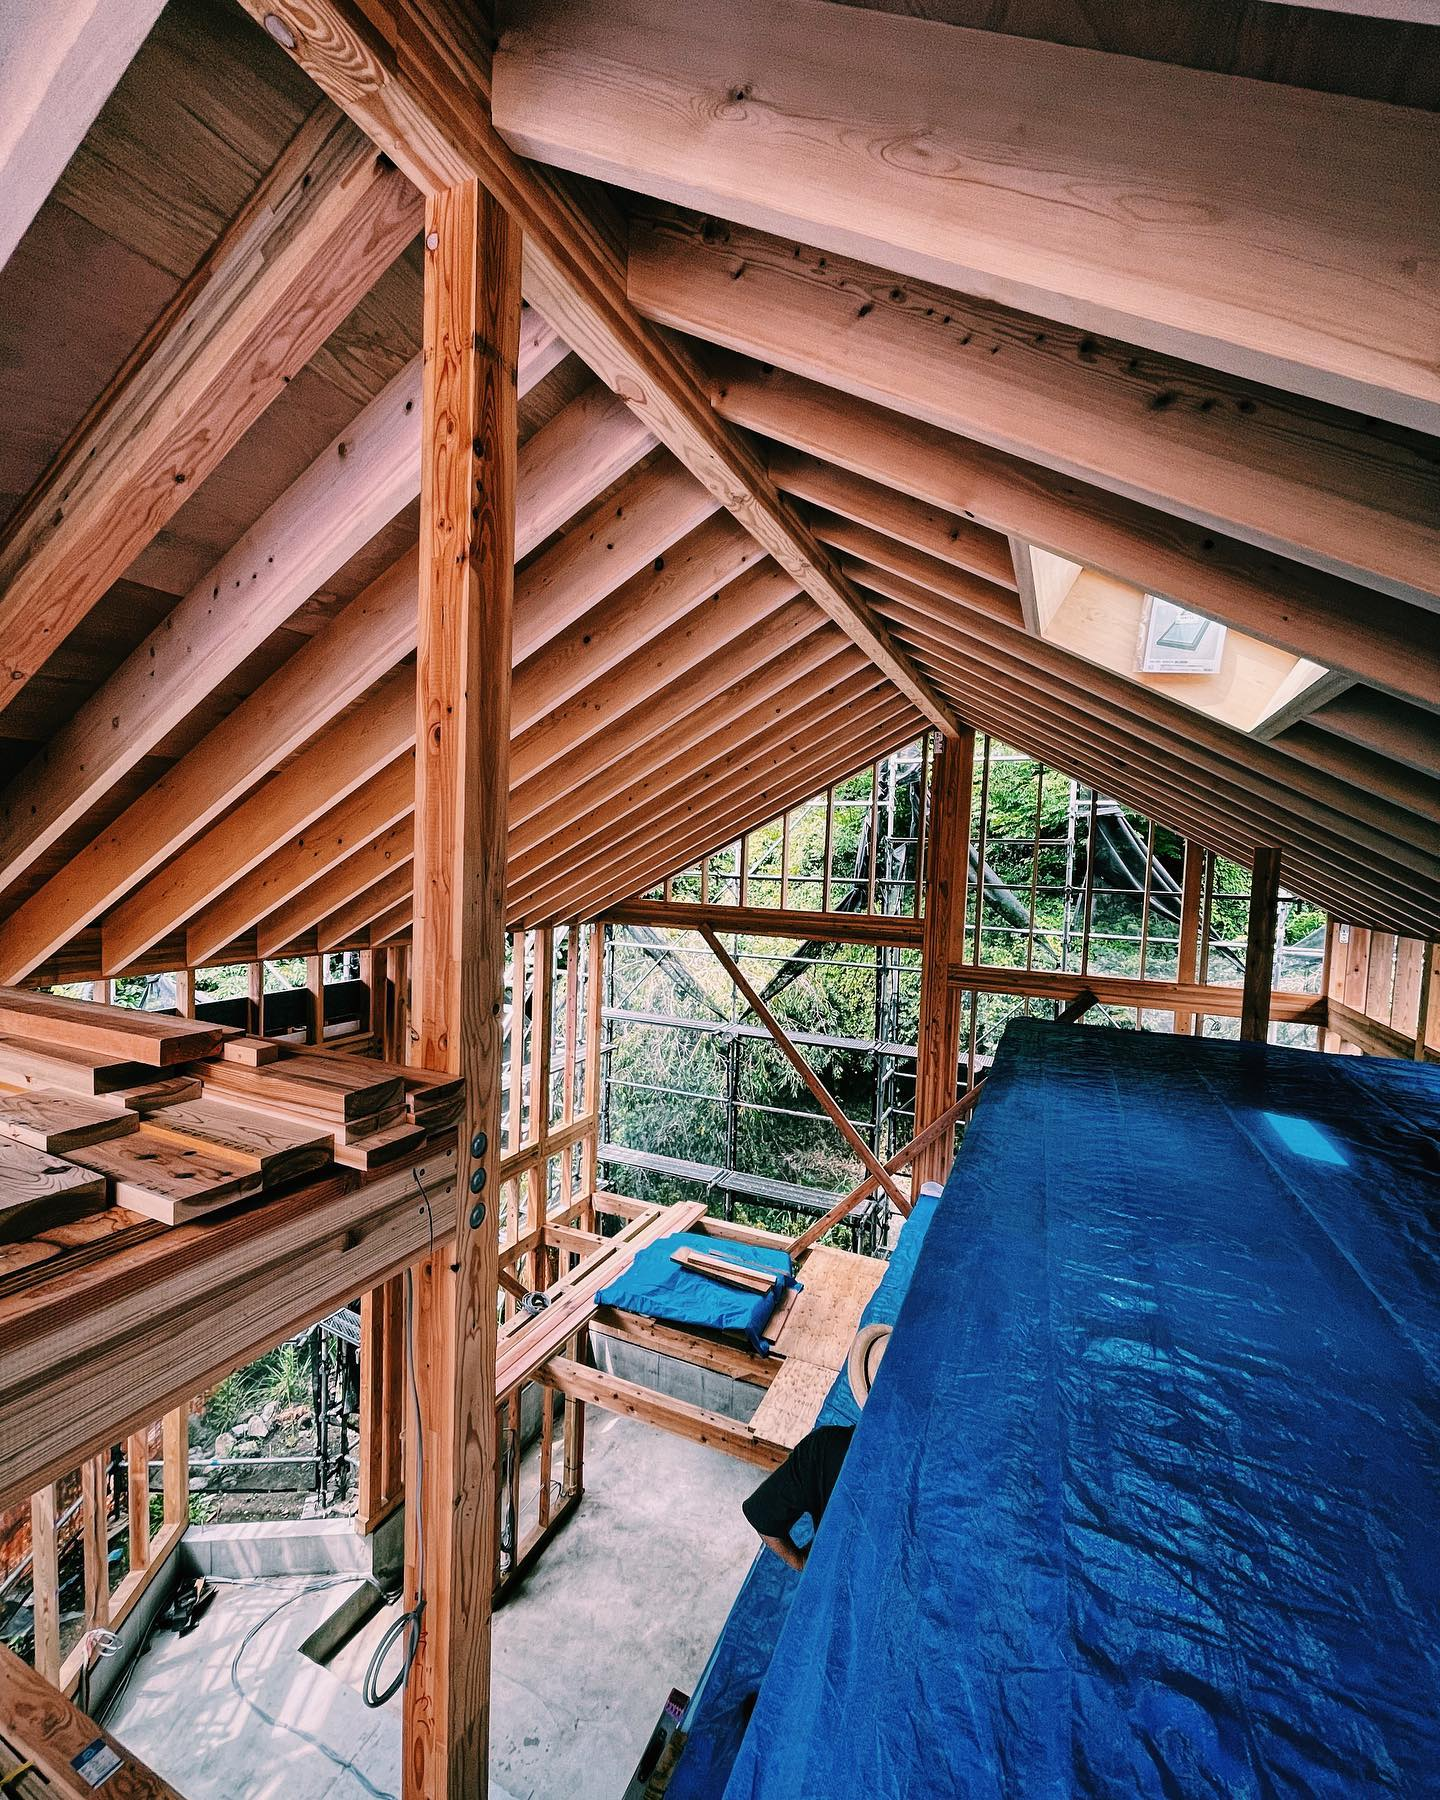 Today's construction site. #structuralengineering #architecture #house #timberstructure #timberframe